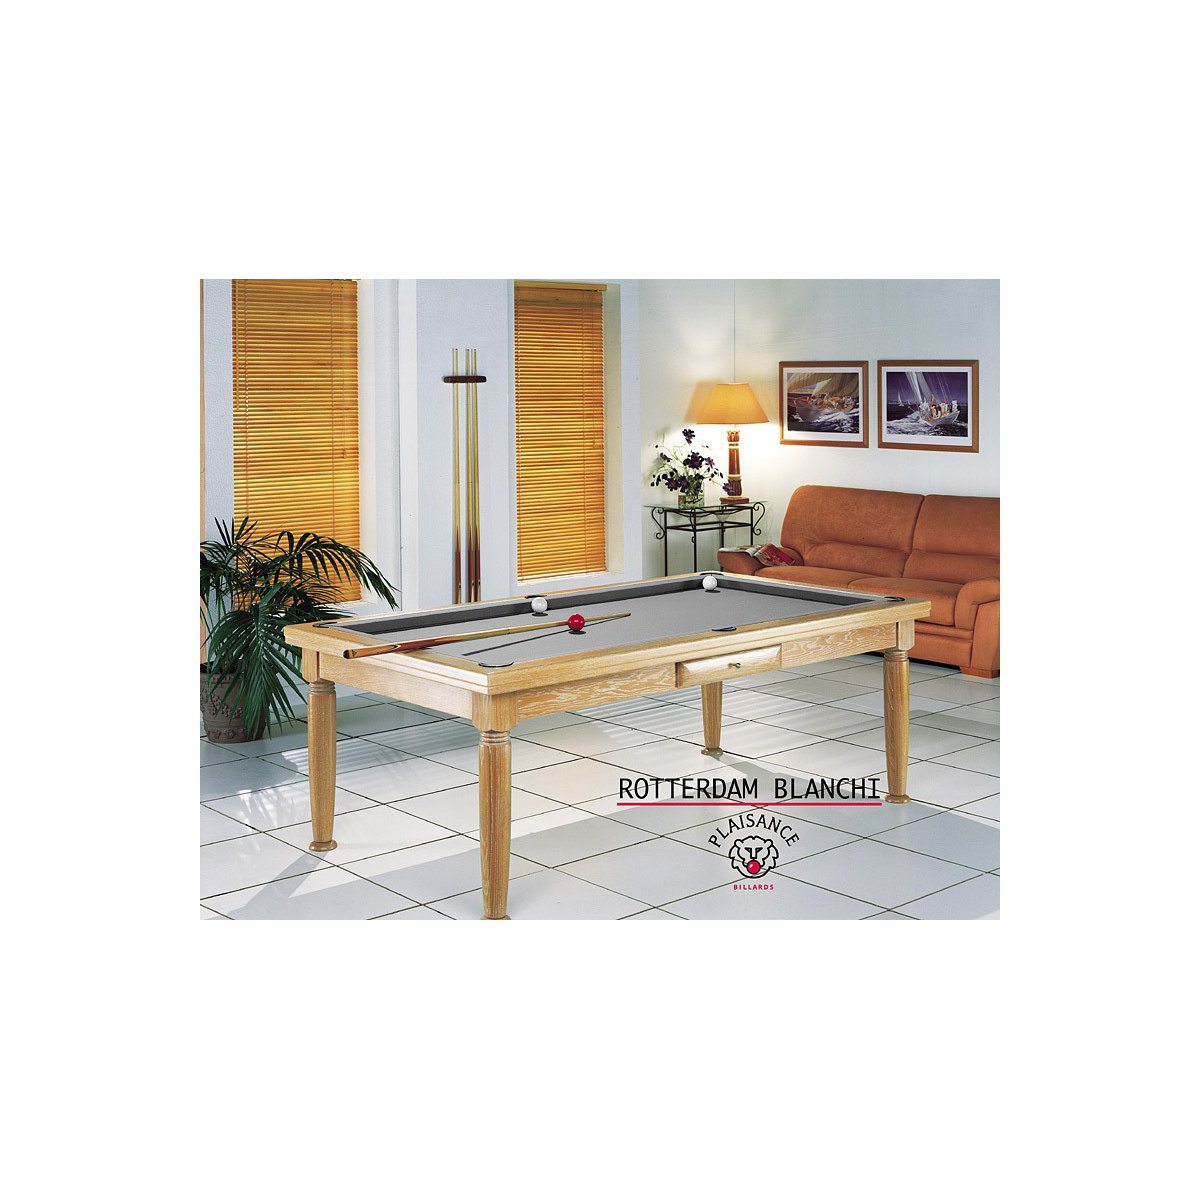 Billard table a manger rotterdam blanchi - Table billard convertible table a manger ...